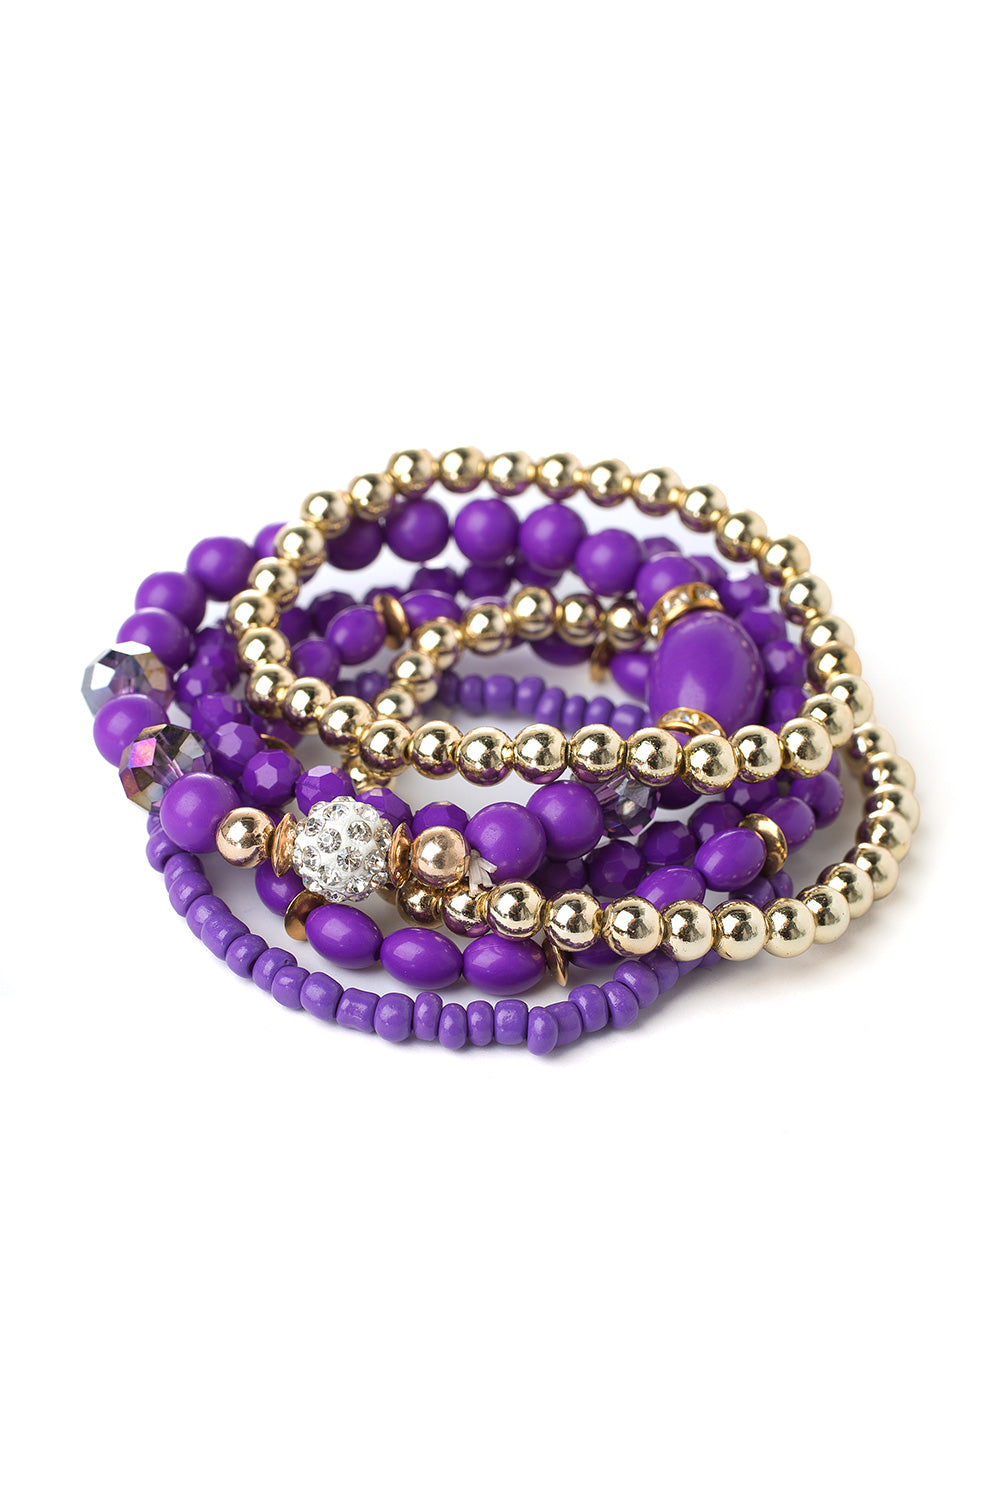 Type 1 Bling Me Purple Bracelet